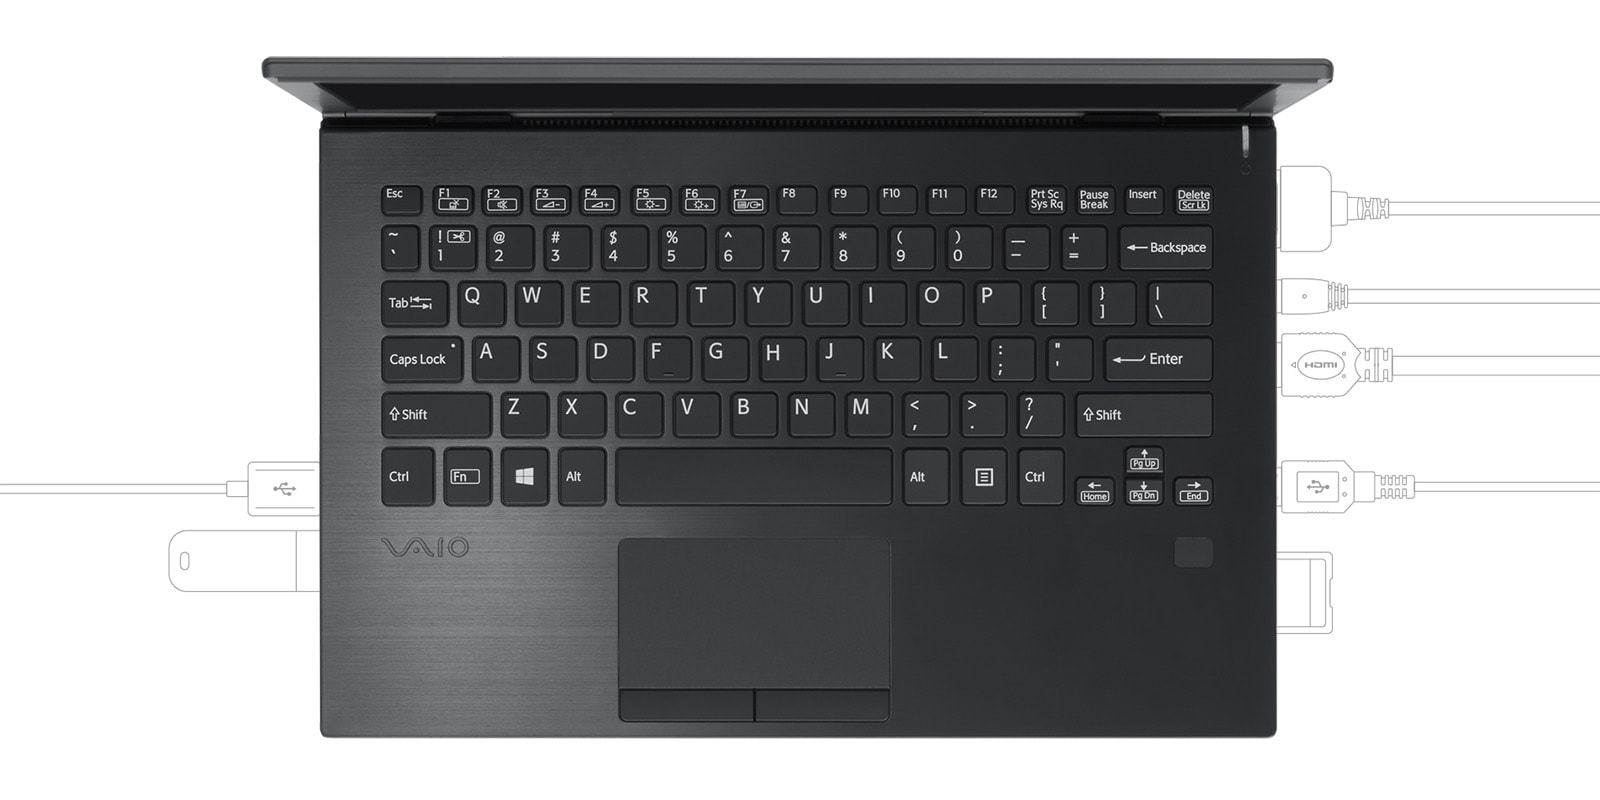 vaio-s11-pdp-connections-min